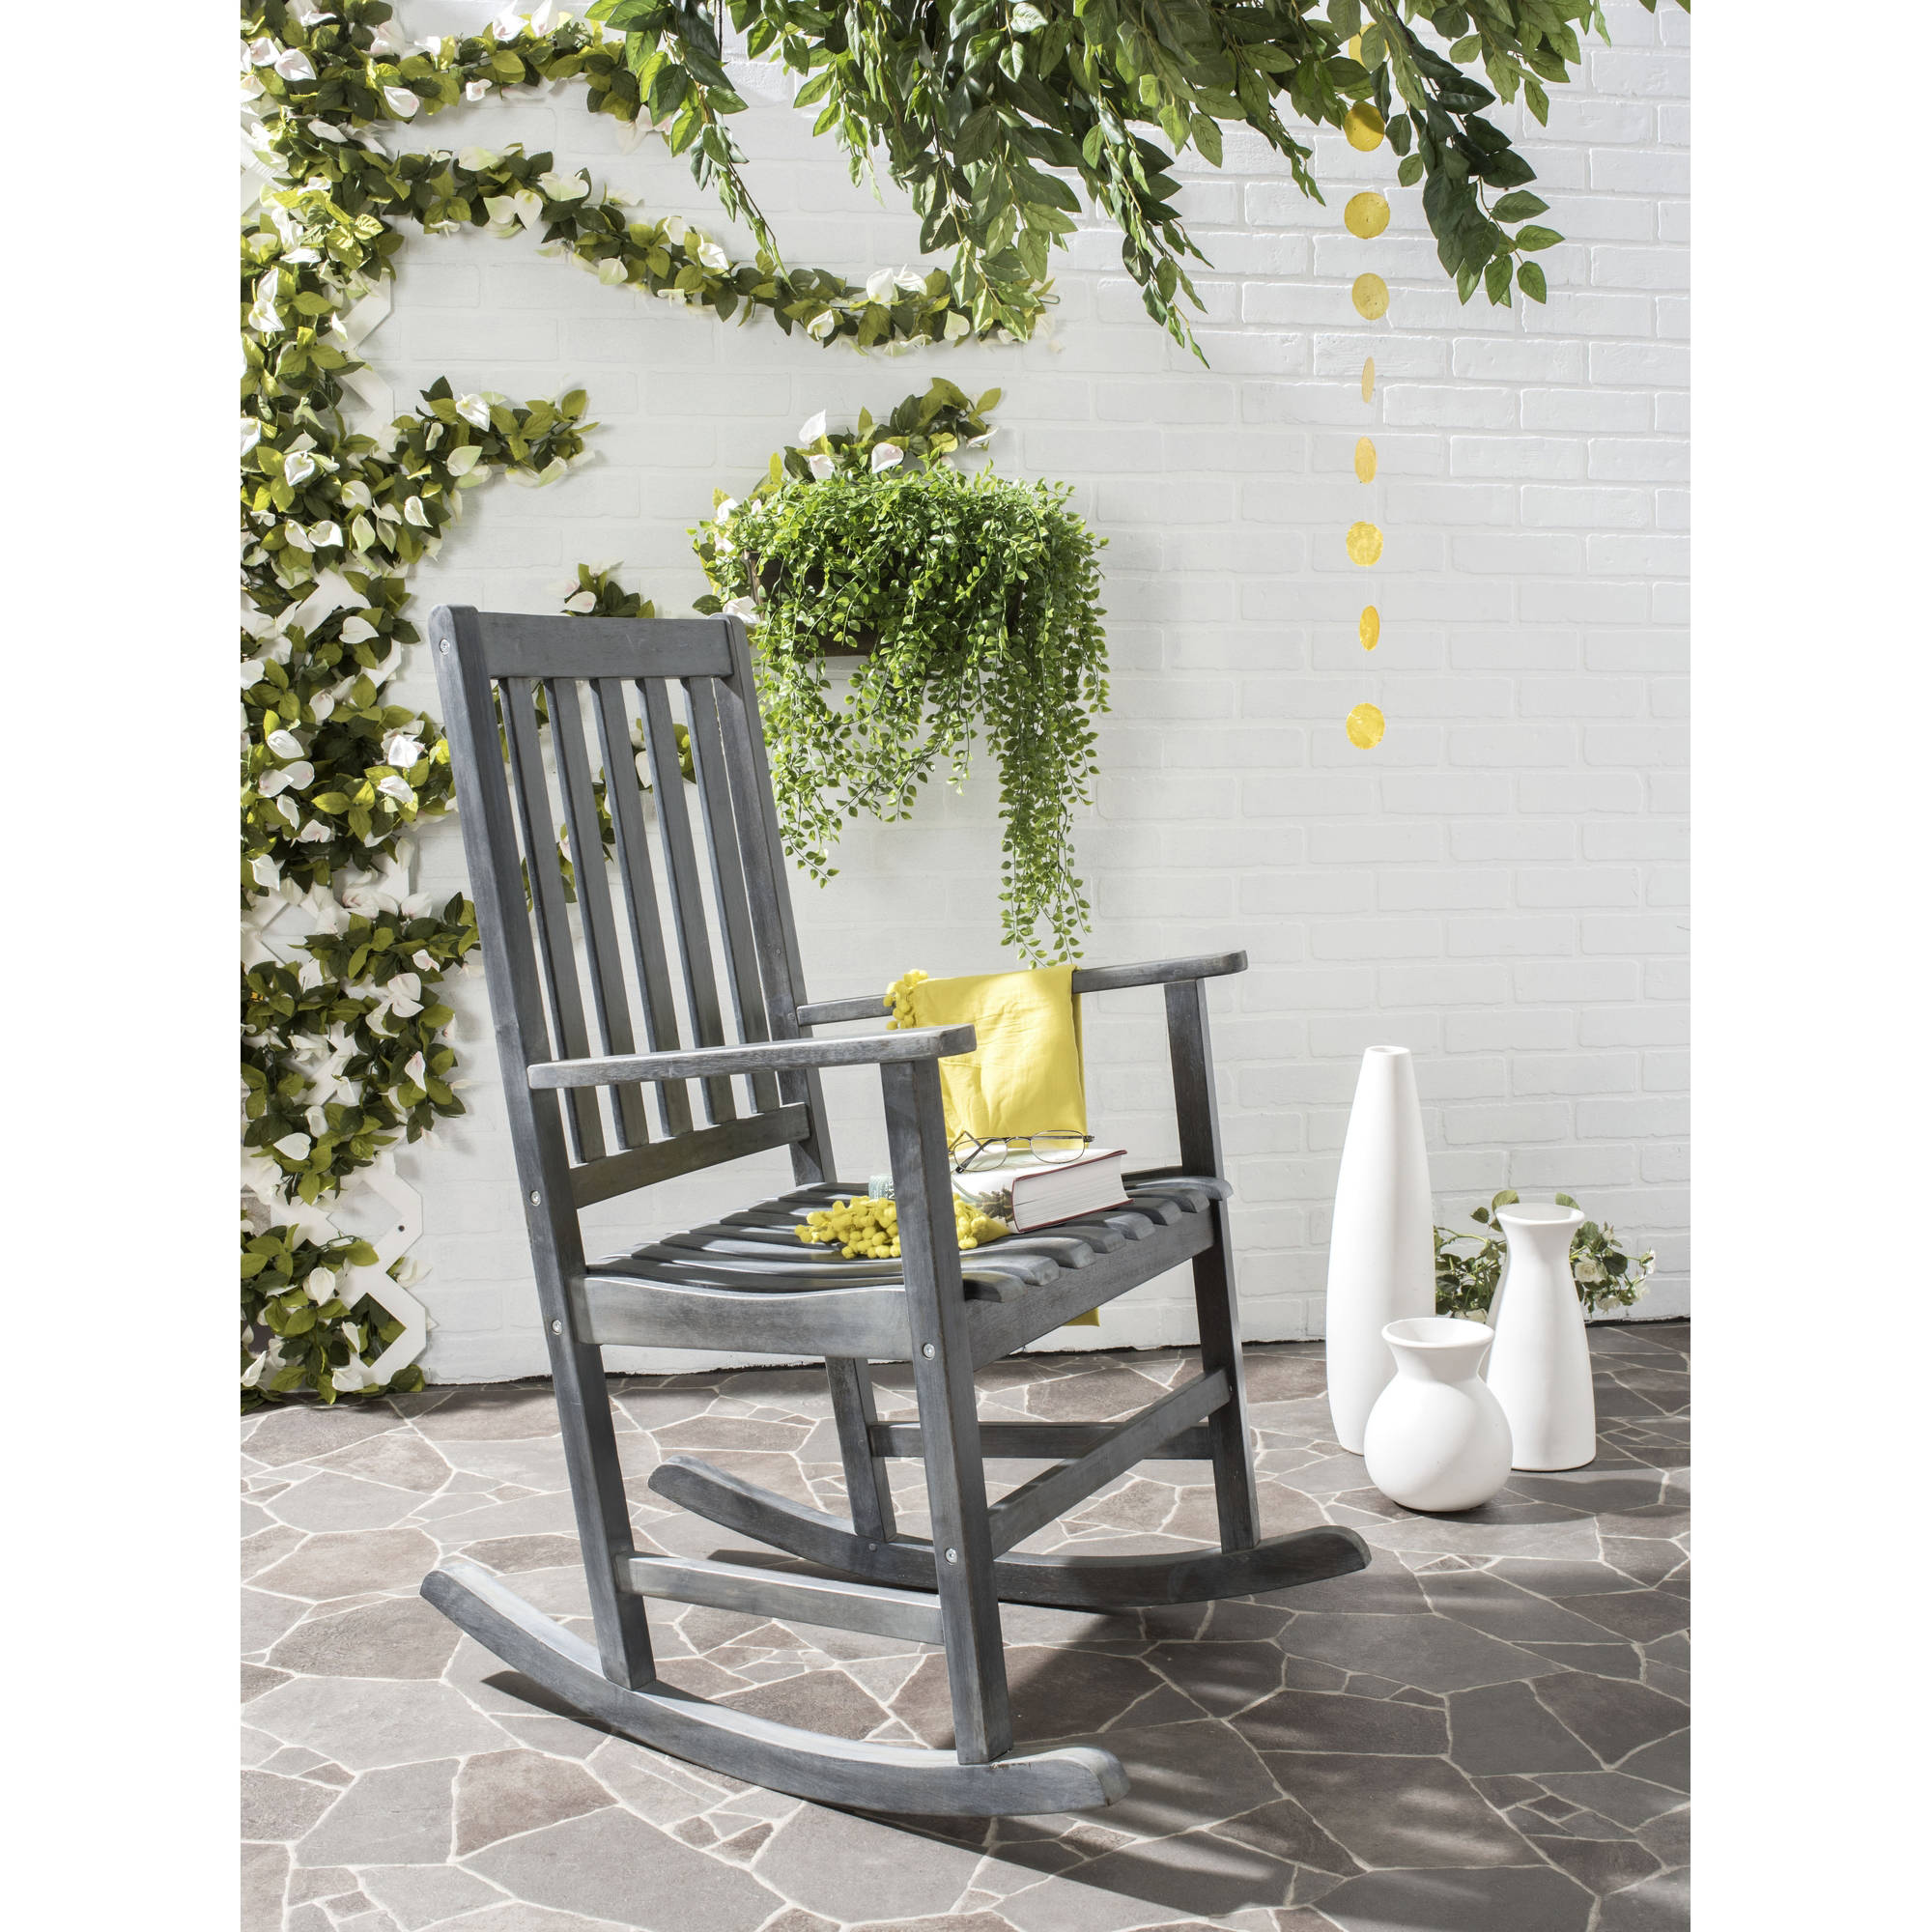 Safavieh Barstow Outdoor Rocking Chair, Multiple Colors by Safavieh